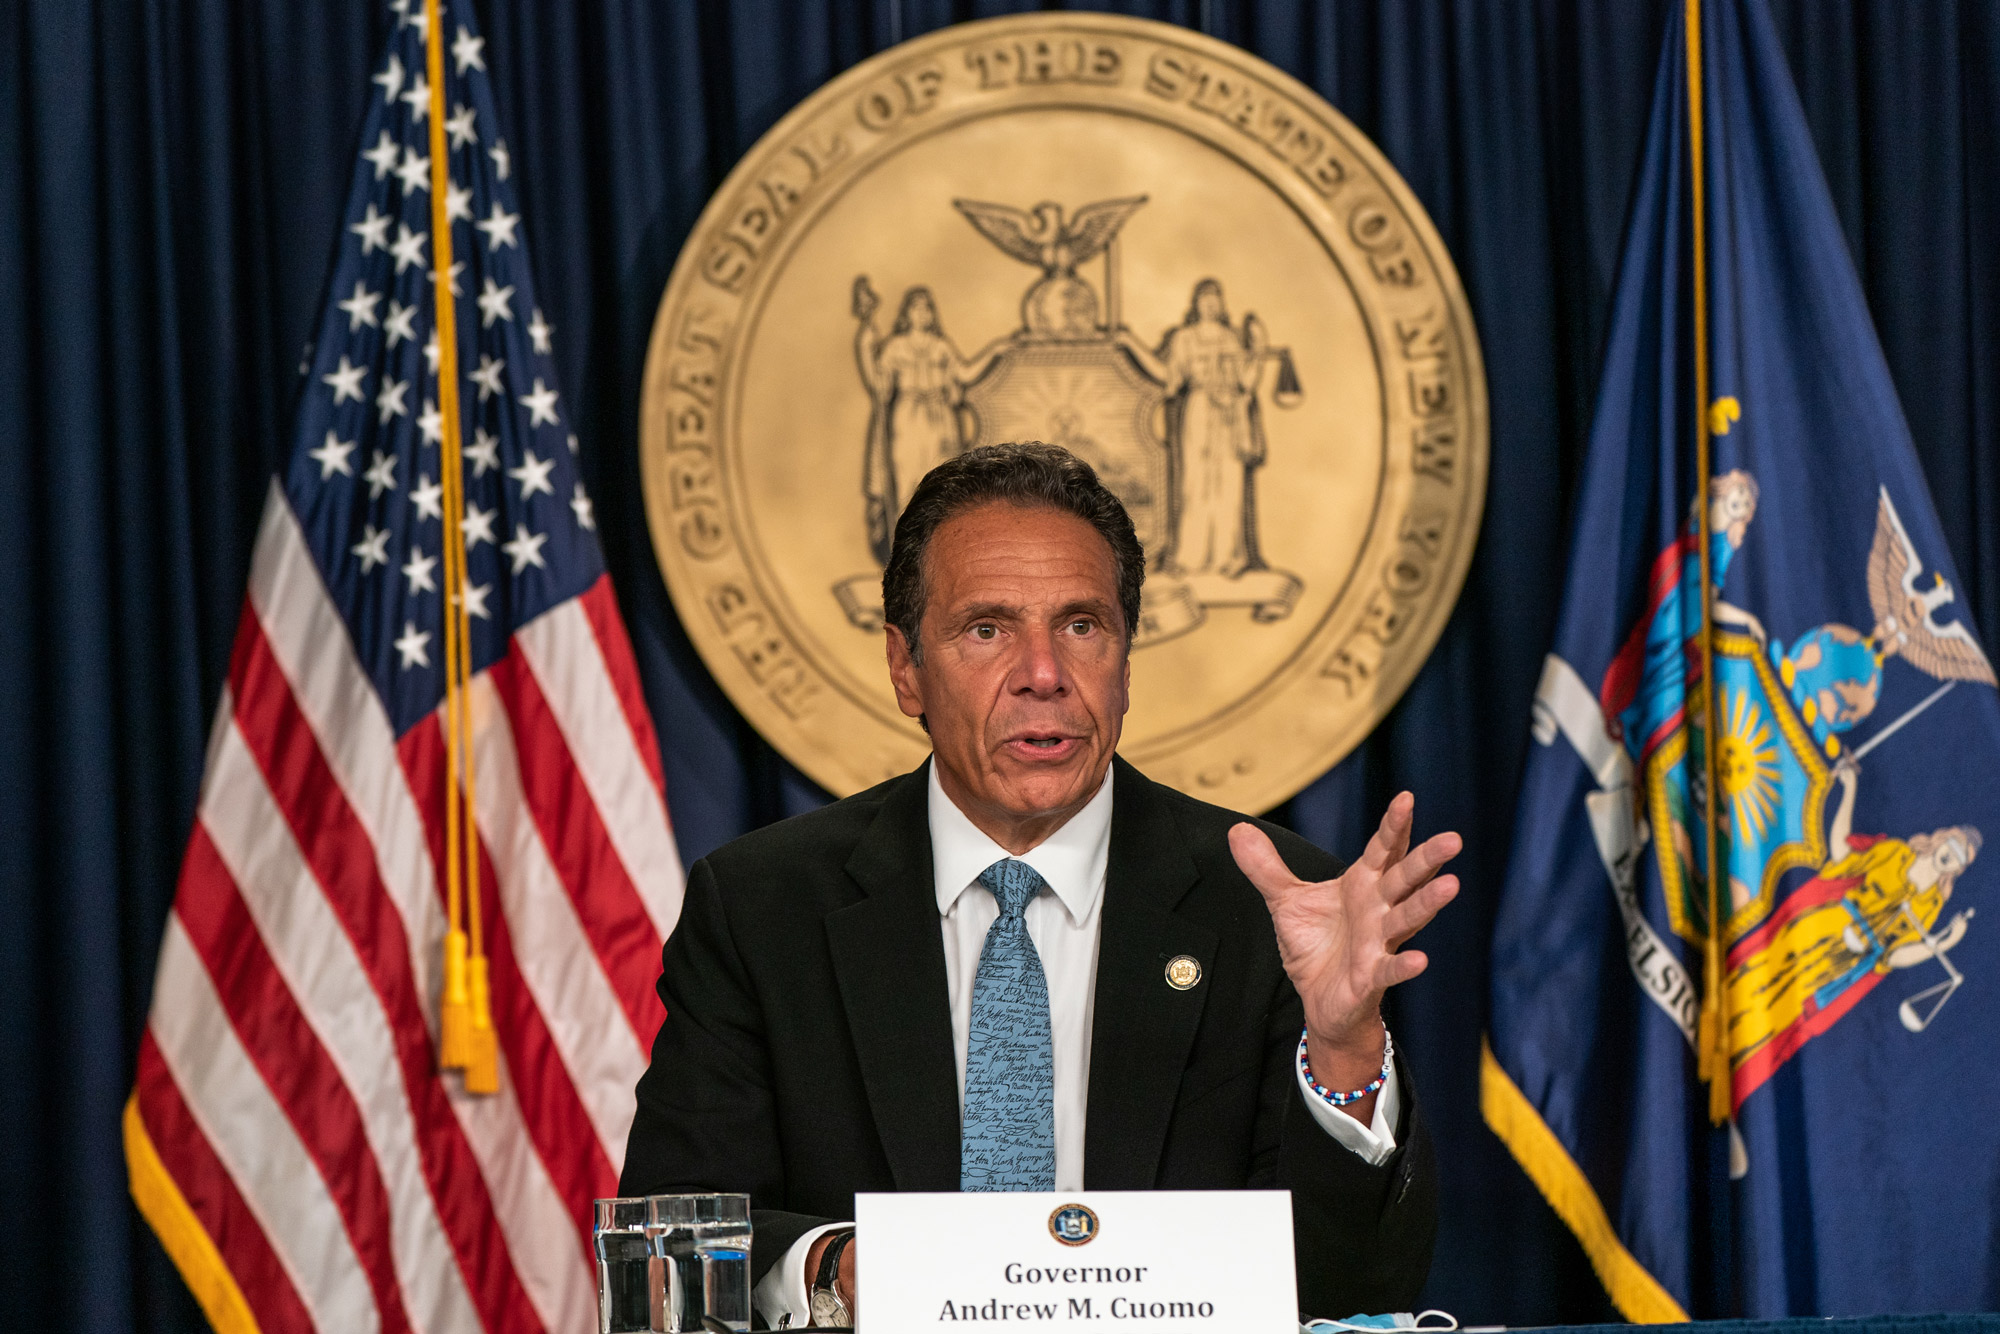 New York Gov. Andrew Cuomo speaks during the daily media briefing at the Office of the Governor of the State of New York on July 23 in New York City.